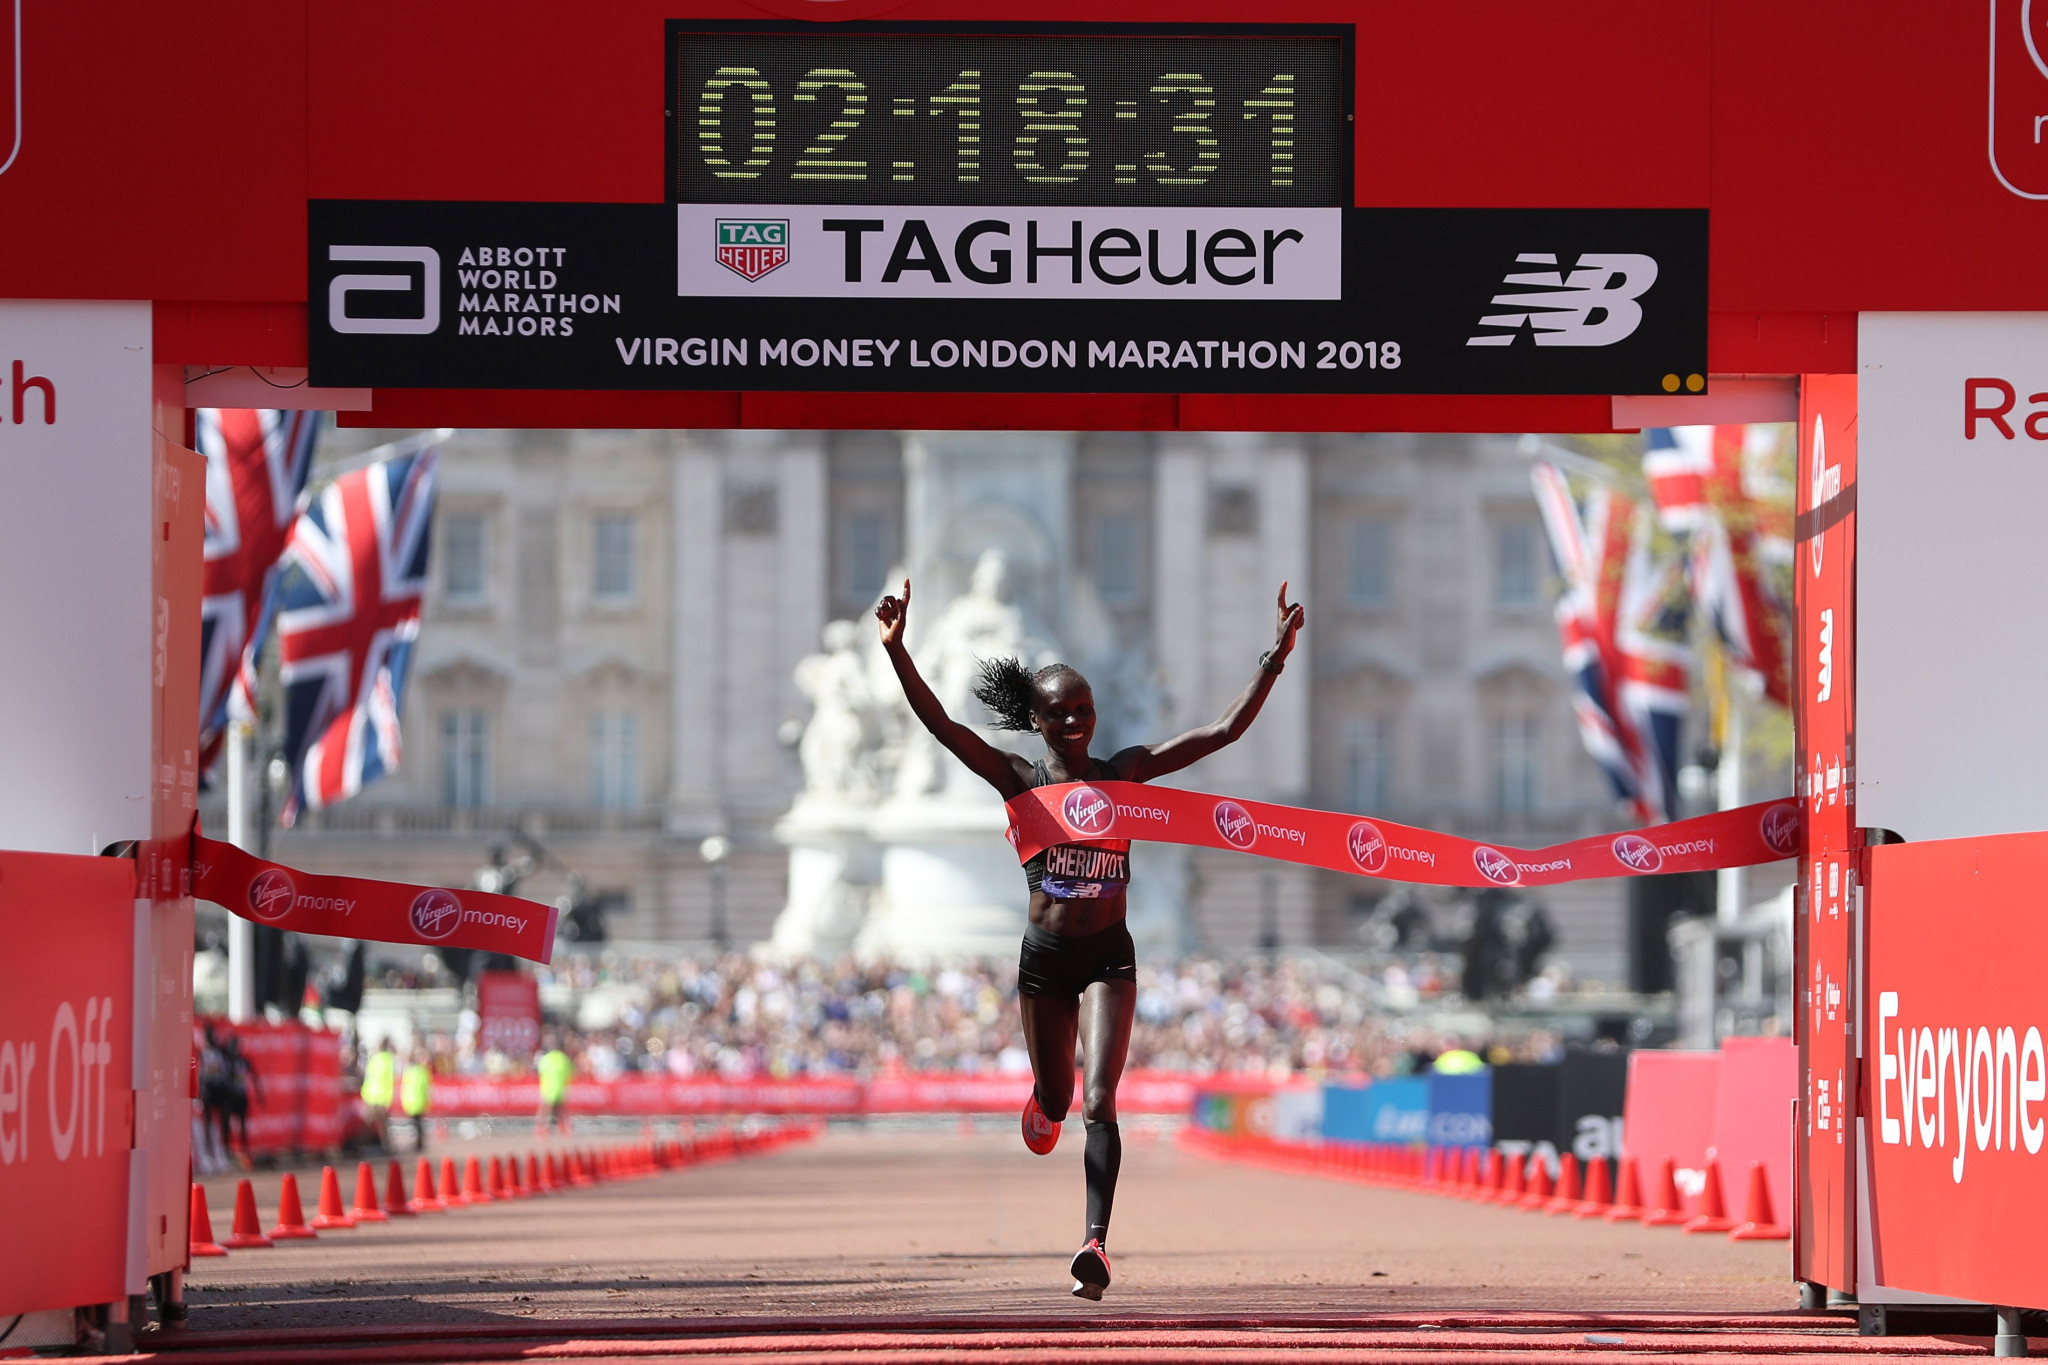 Kenya's Olympic 5,000 metres champion Vivian Cheruiyot won her first Virgin London Marathon ©Getty Images